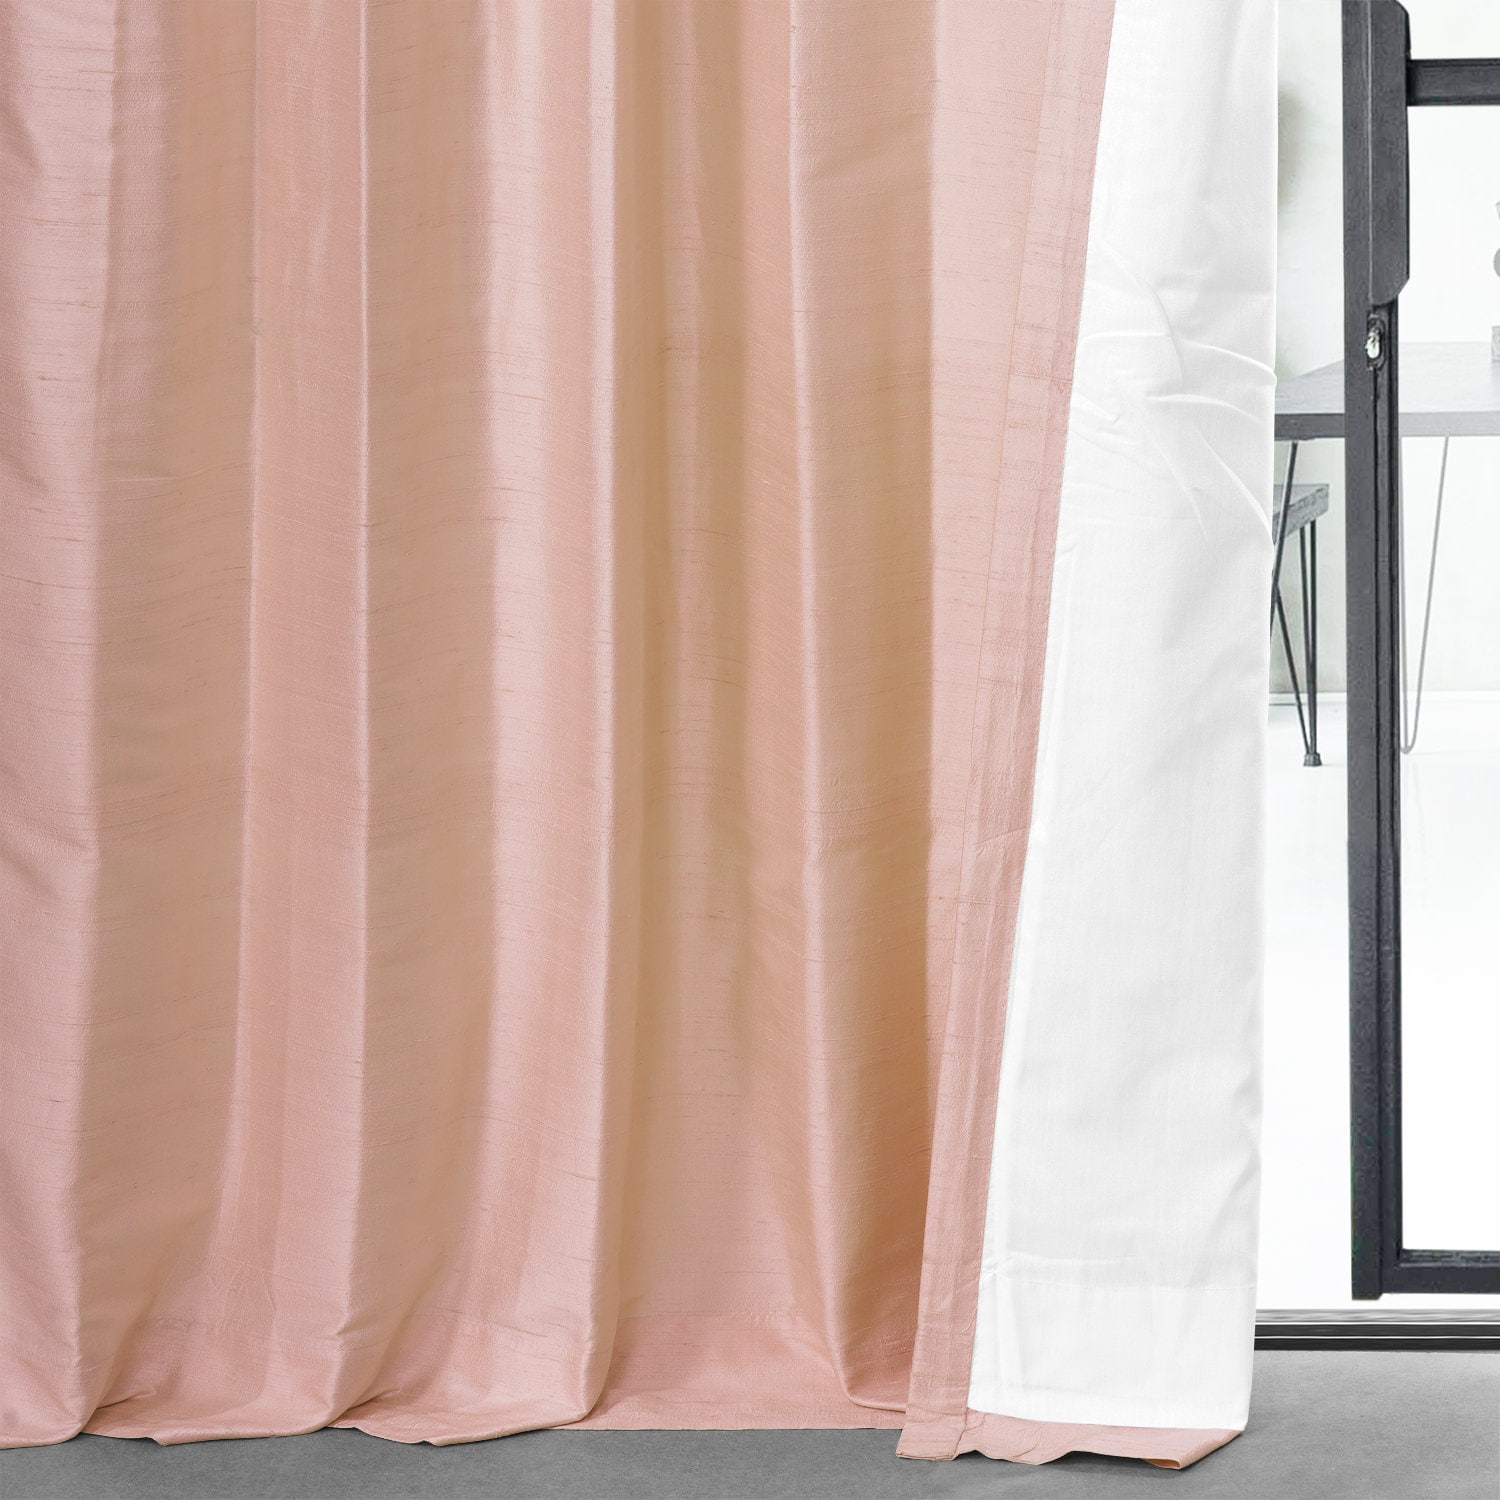 Truffle Pink Textured Dupioni Silk Curtain